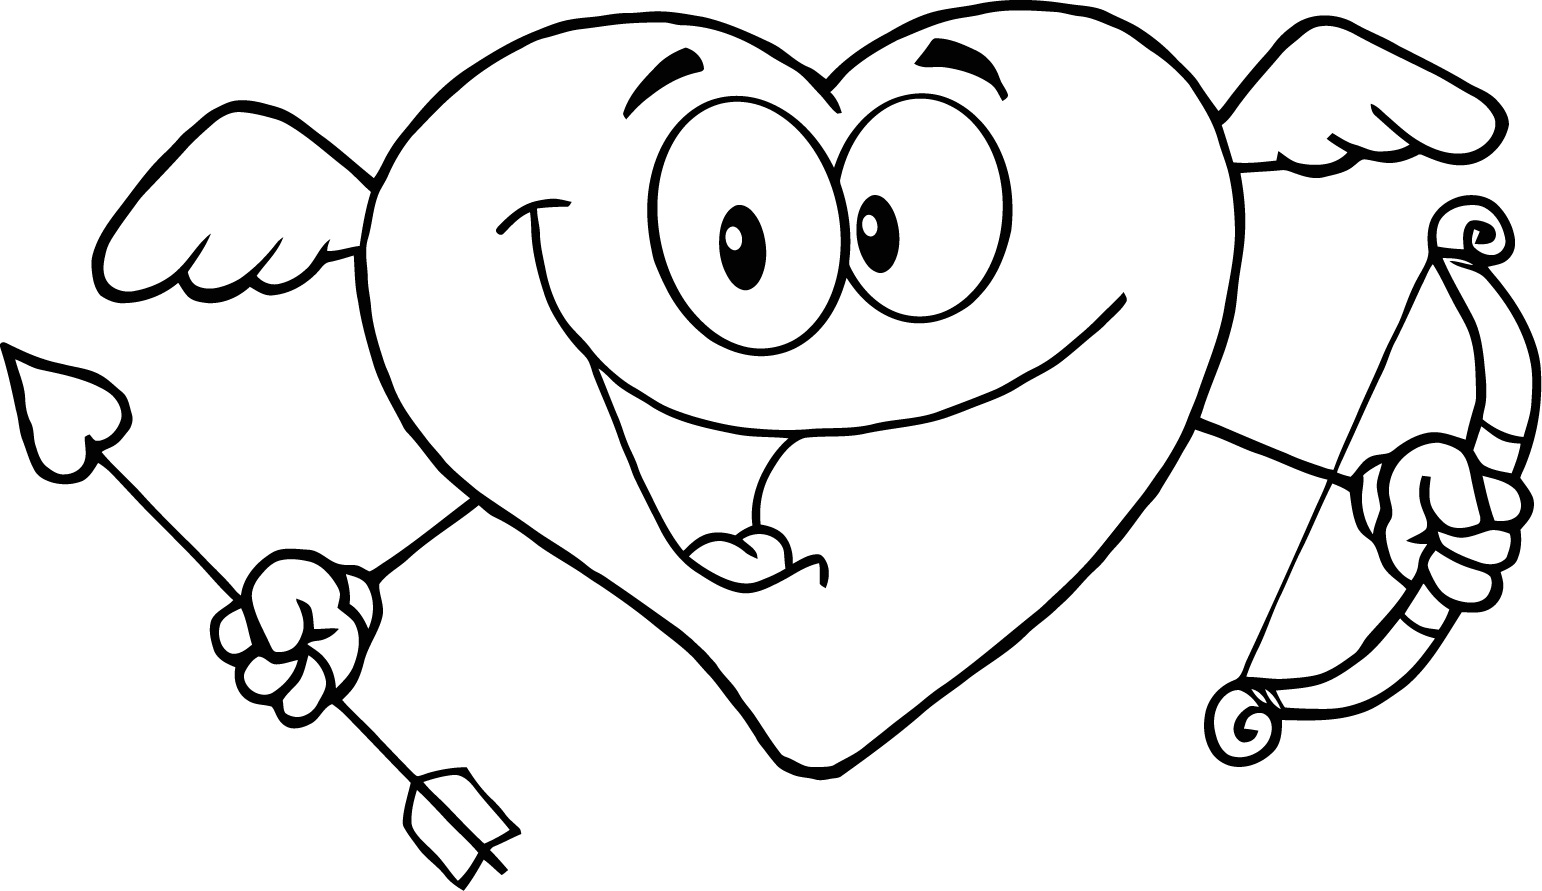 Coloriage Smiley.60 Dessins De Coloriage Smiley A Imprimer Sur Laguerche Com Page 3